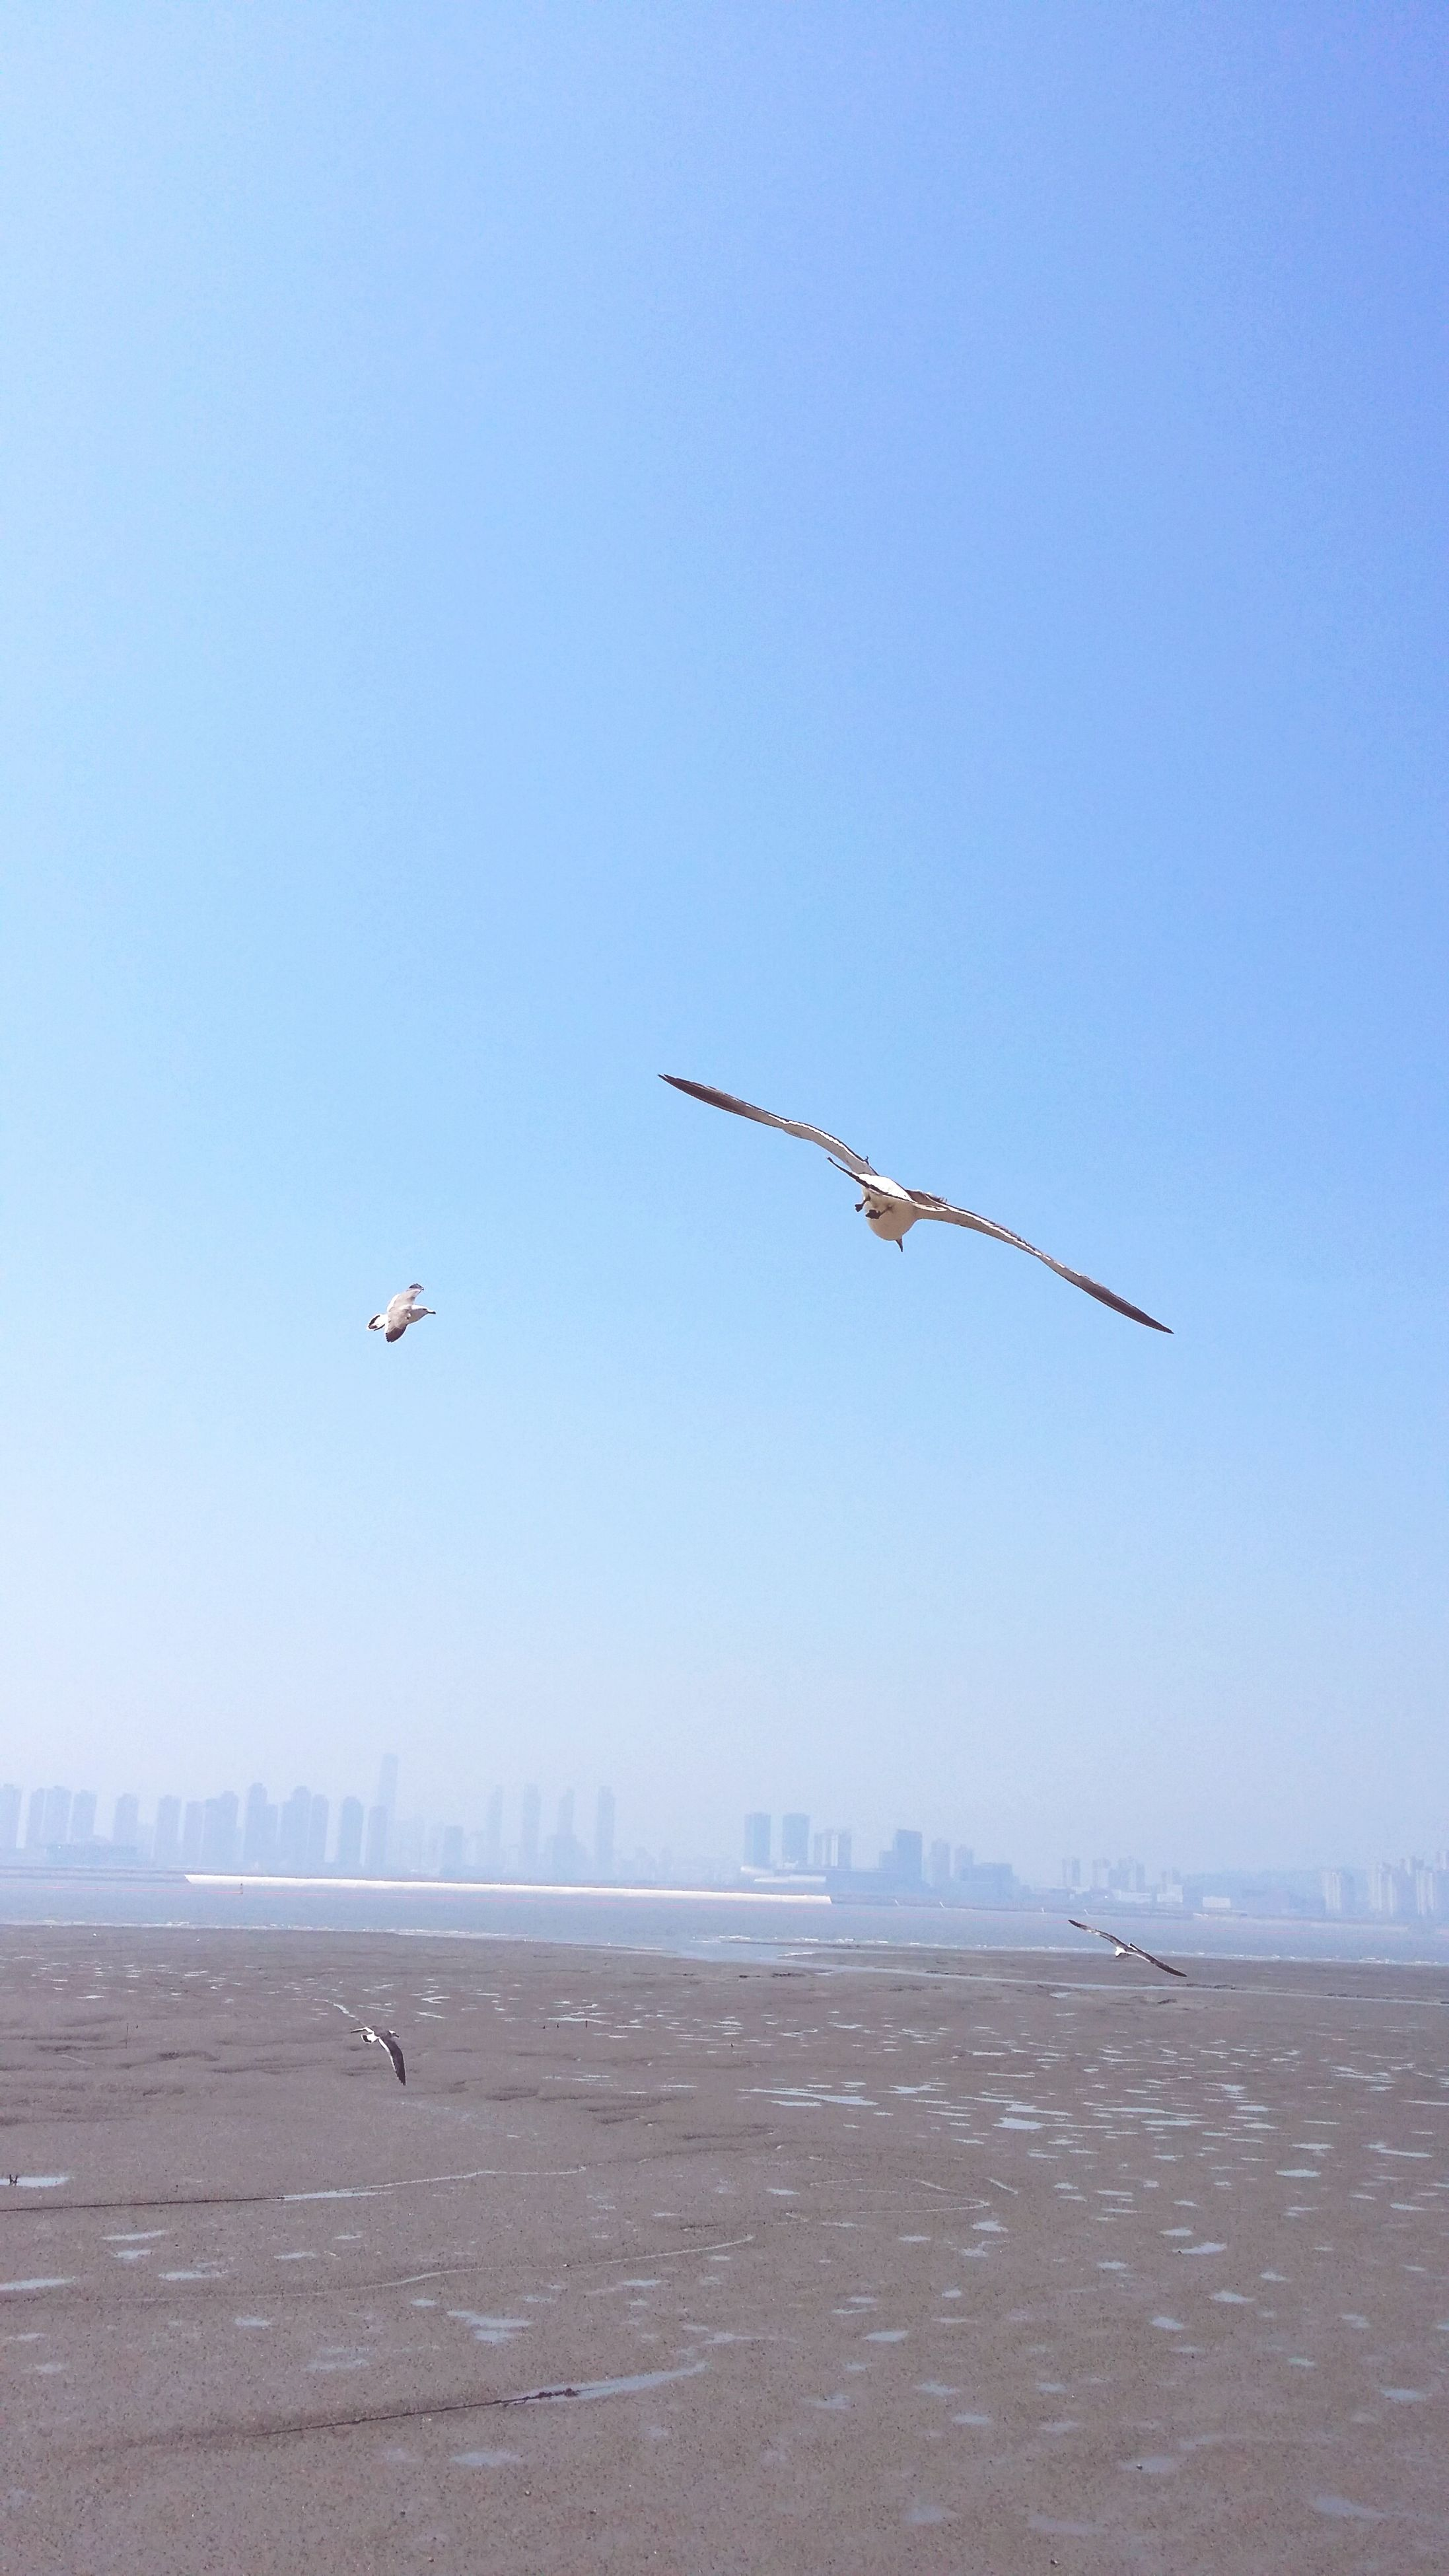 flying, transportation, airplane, air vehicle, mid-air, mode of transport, clear sky, on the move, copy space, public transportation, bird, travel, flight, journey, blue, motion, spread wings, airways, animals in the wild, helicopter